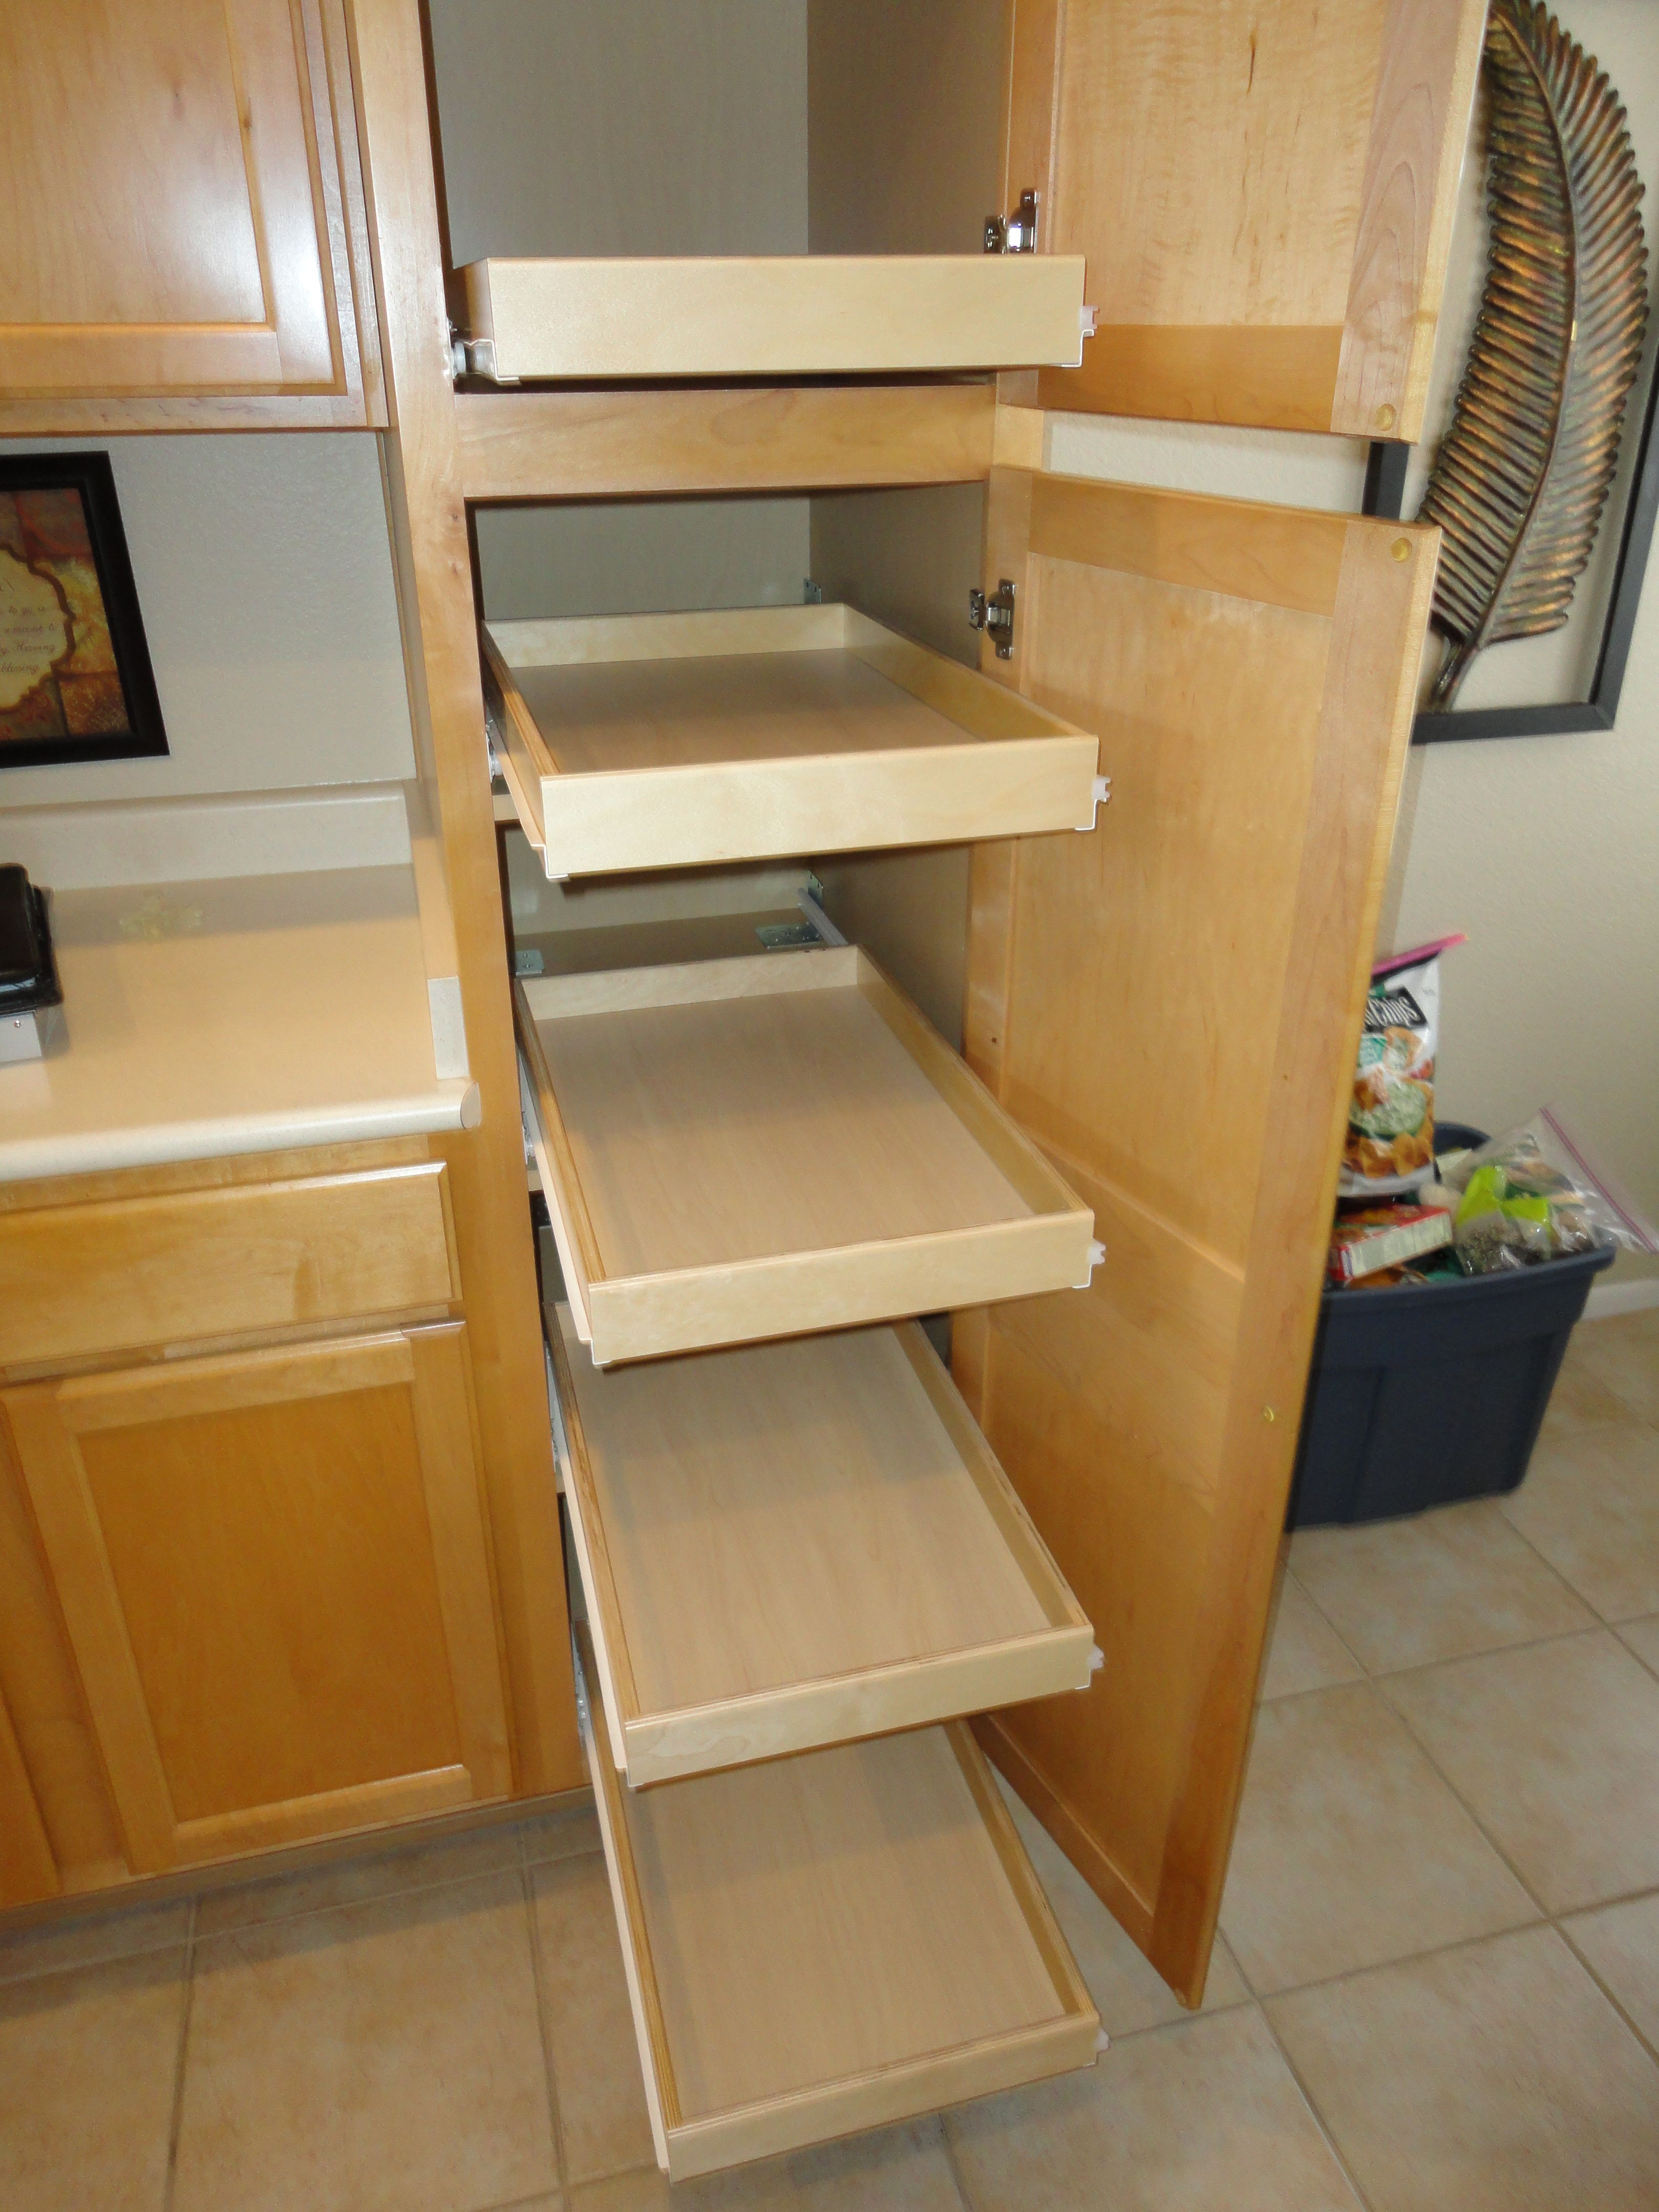 Attaching Pull Out Shelves Onto Pantry Shelves Allows The Shelves